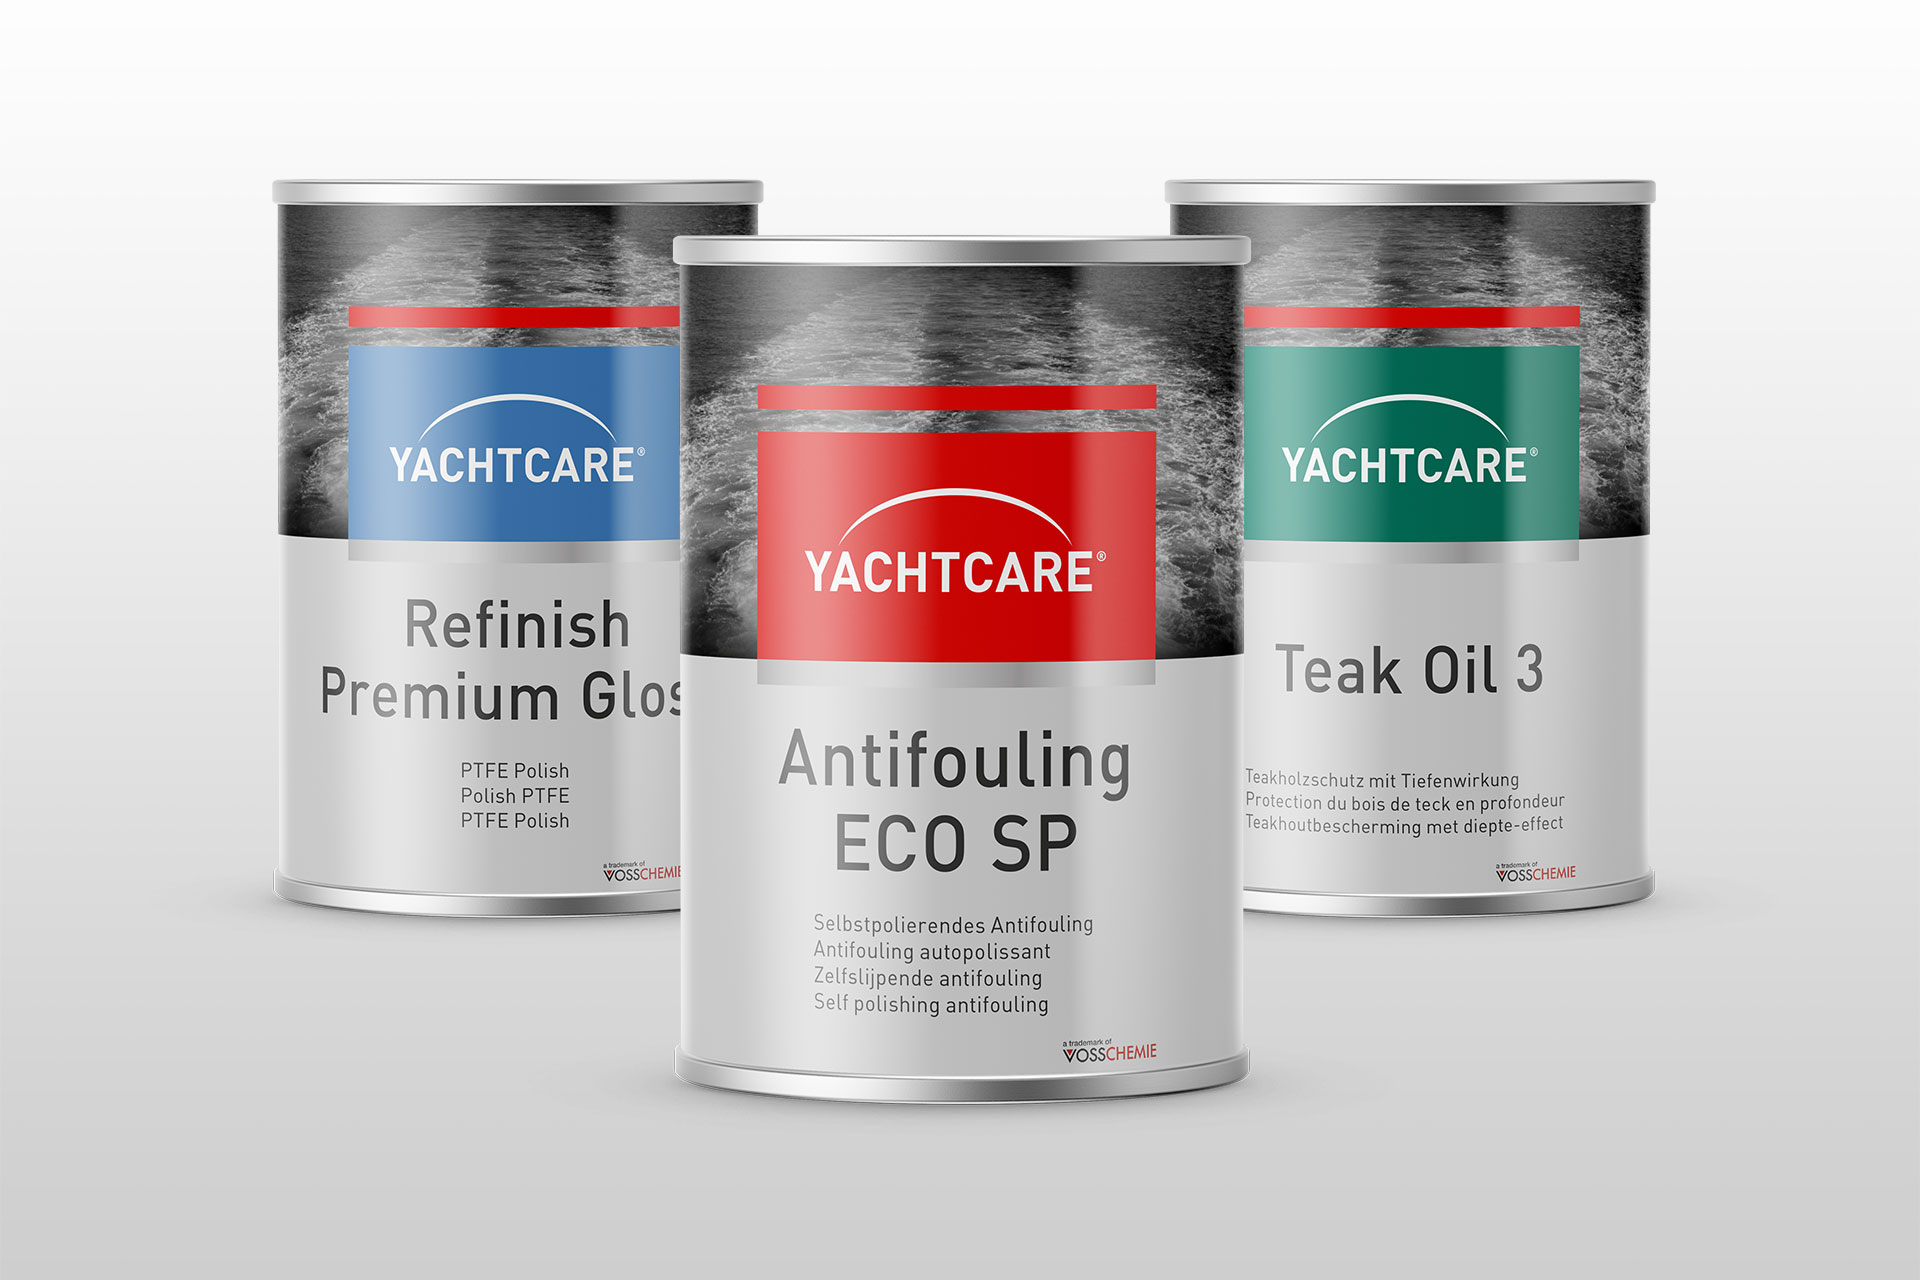 yachtcare-verpackungsdesign